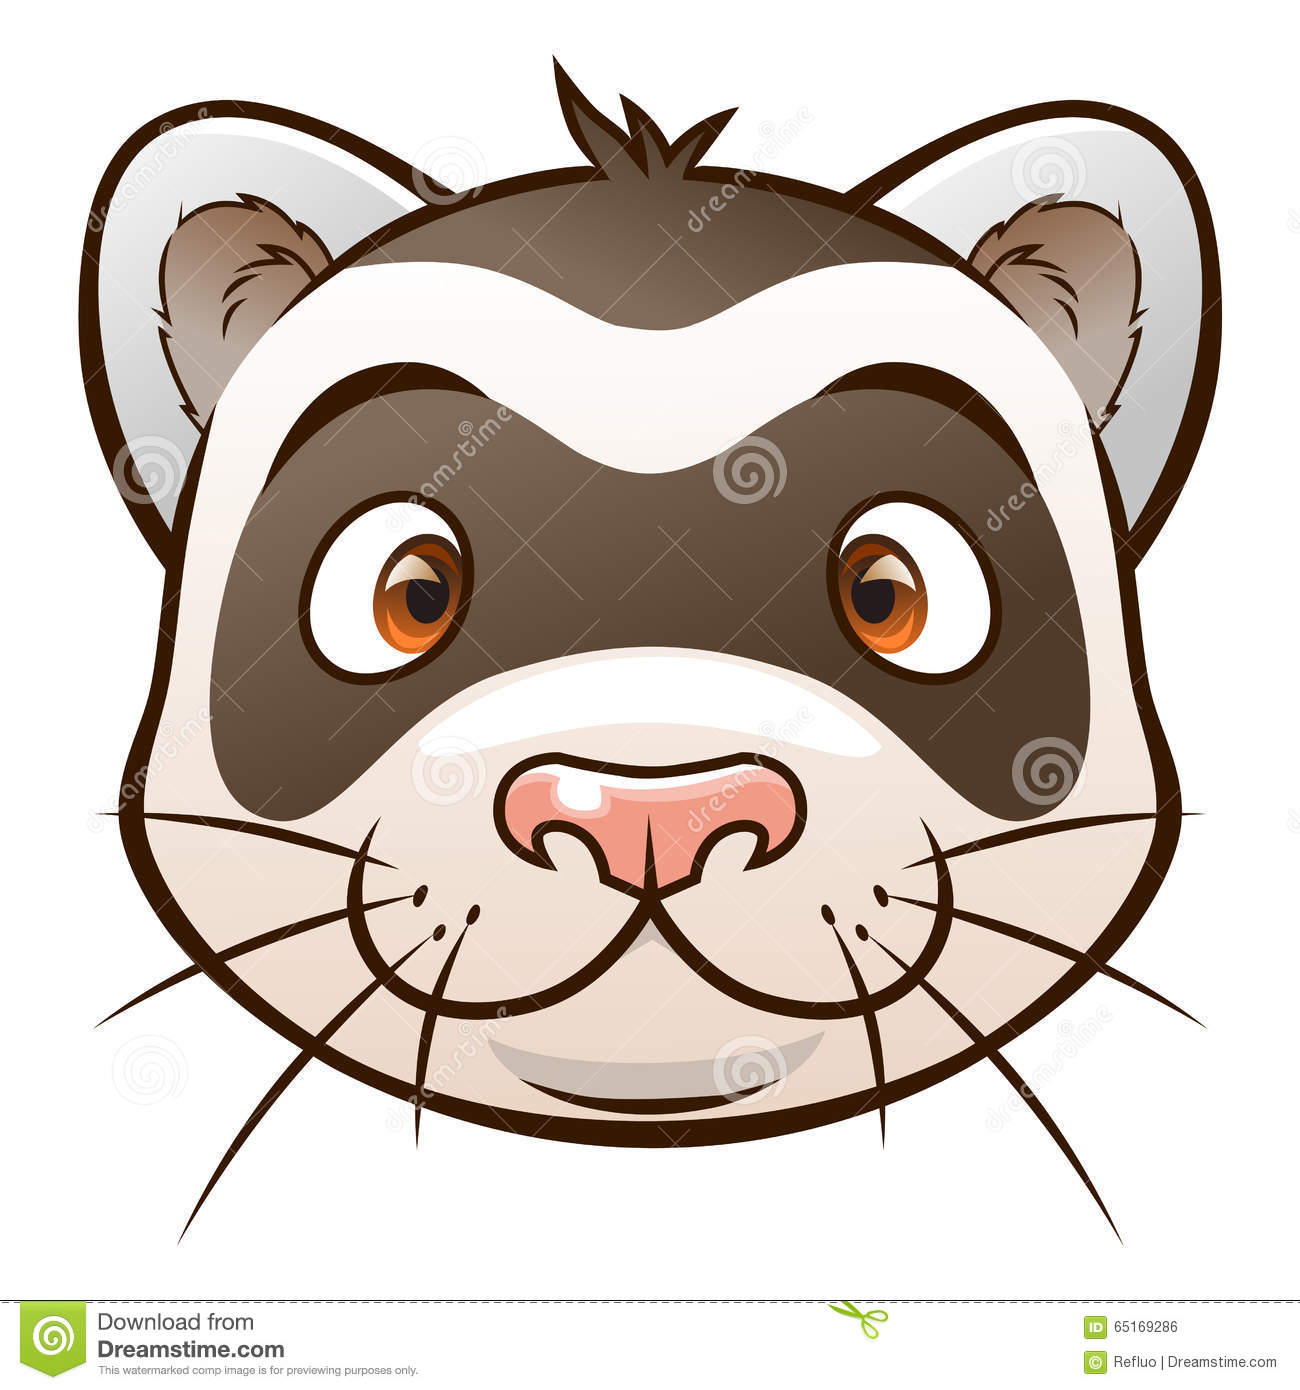 hight resolution of cute cartoon ferret face of cartoon ferret on the white background look similar pets